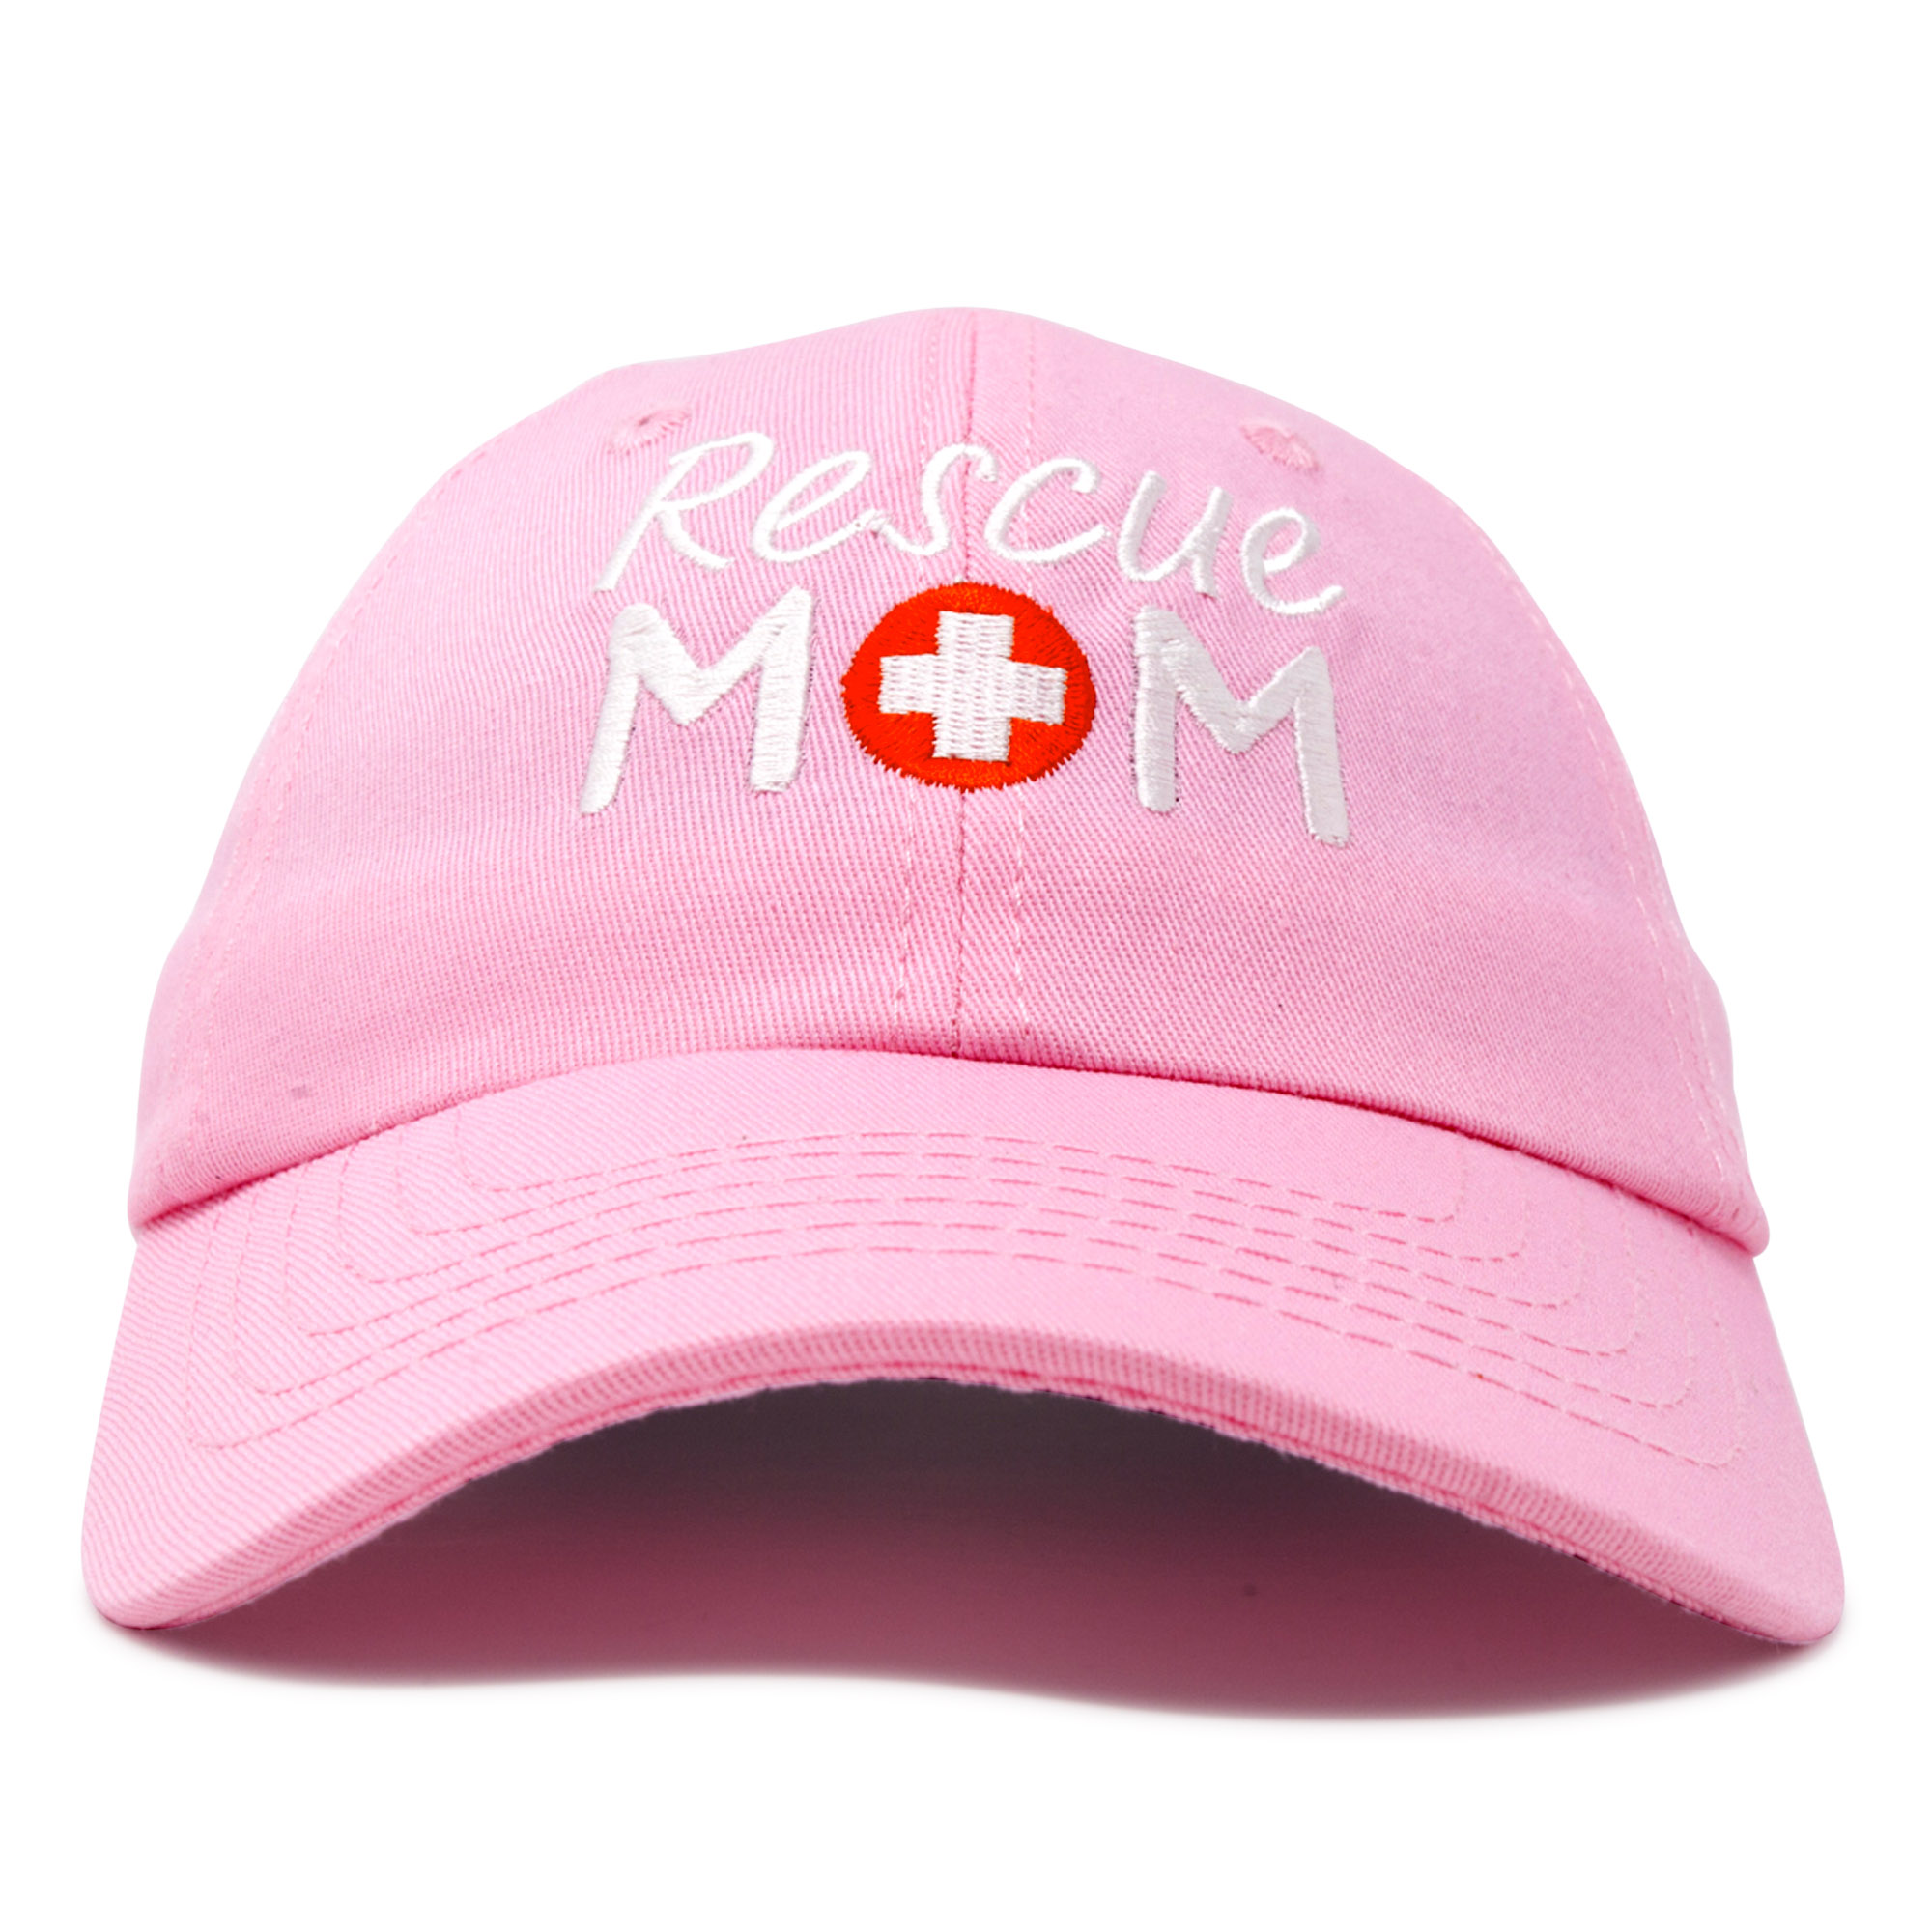 d97067477ae18 DALIX - DALIX Rescue Mom Womens Baseball Cap Dad Hat in Light Blue -  Walmart.com